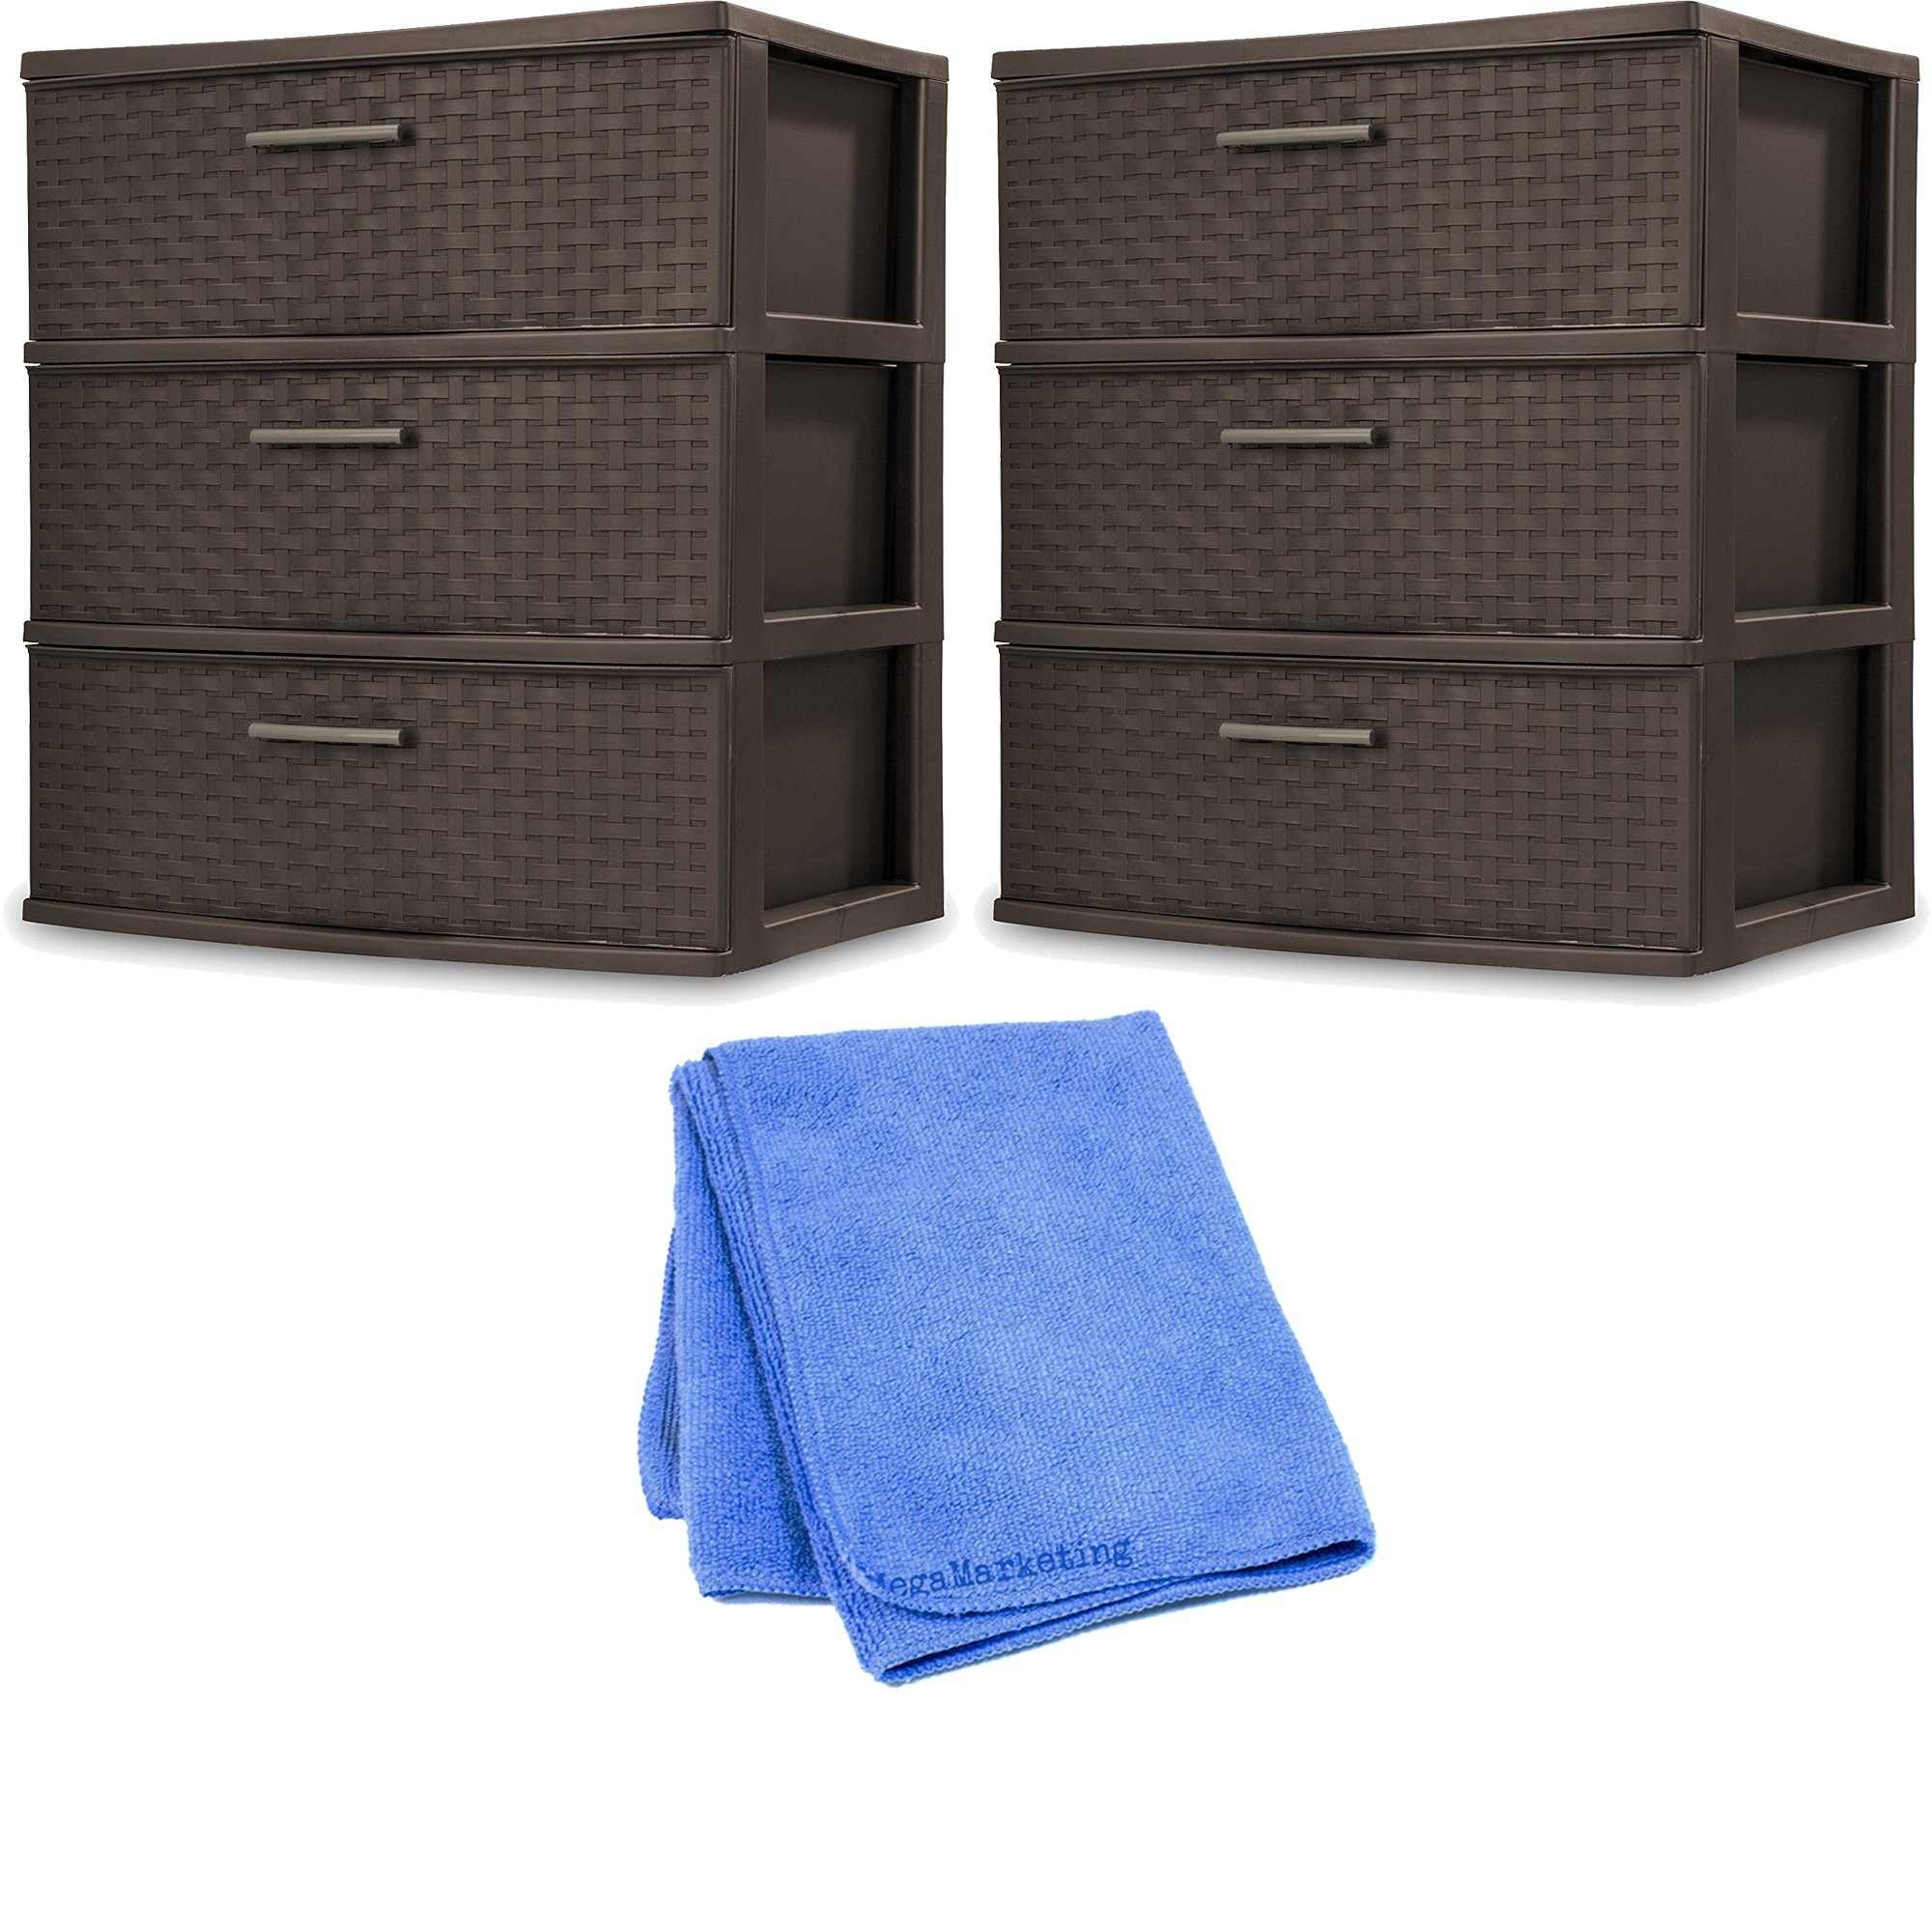 Sterilite 25306P01 3 Drawer Wide Weave Tower, Espresso Frame & Drawers w/ Driftwood Handles, 2-Pack with Cloth Cleaner